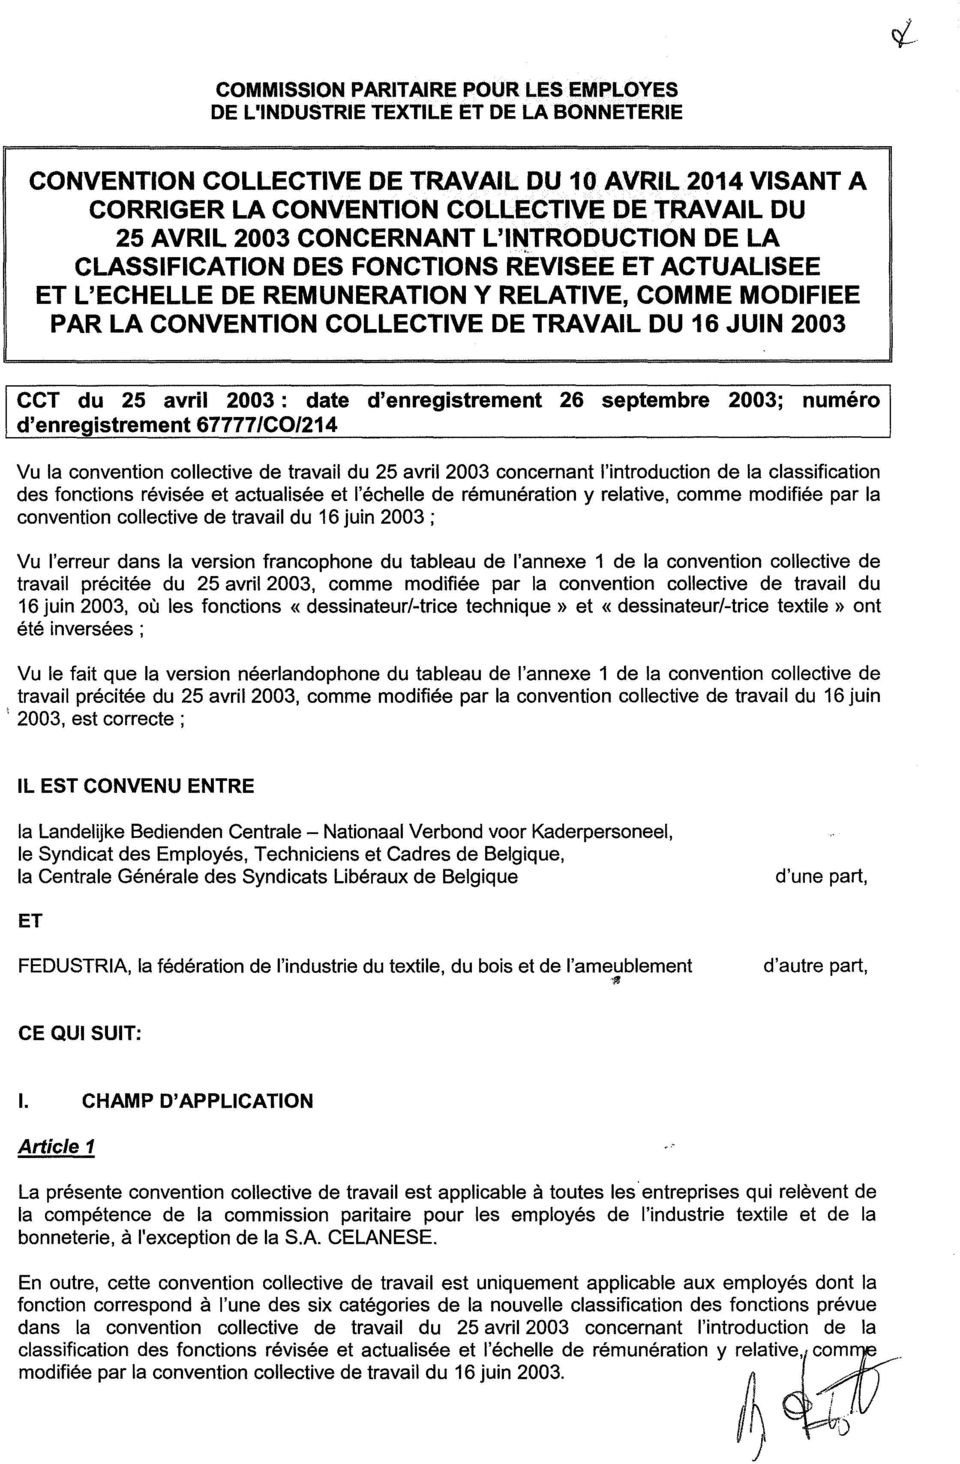 CCT du 25 avril 2003: date d'enregistrement 26 septembre 2003; numéro d'enregistrement 67777/C0/214 Vu la convention collective de travail du 25 avril 2003 concernant l'introduction de la